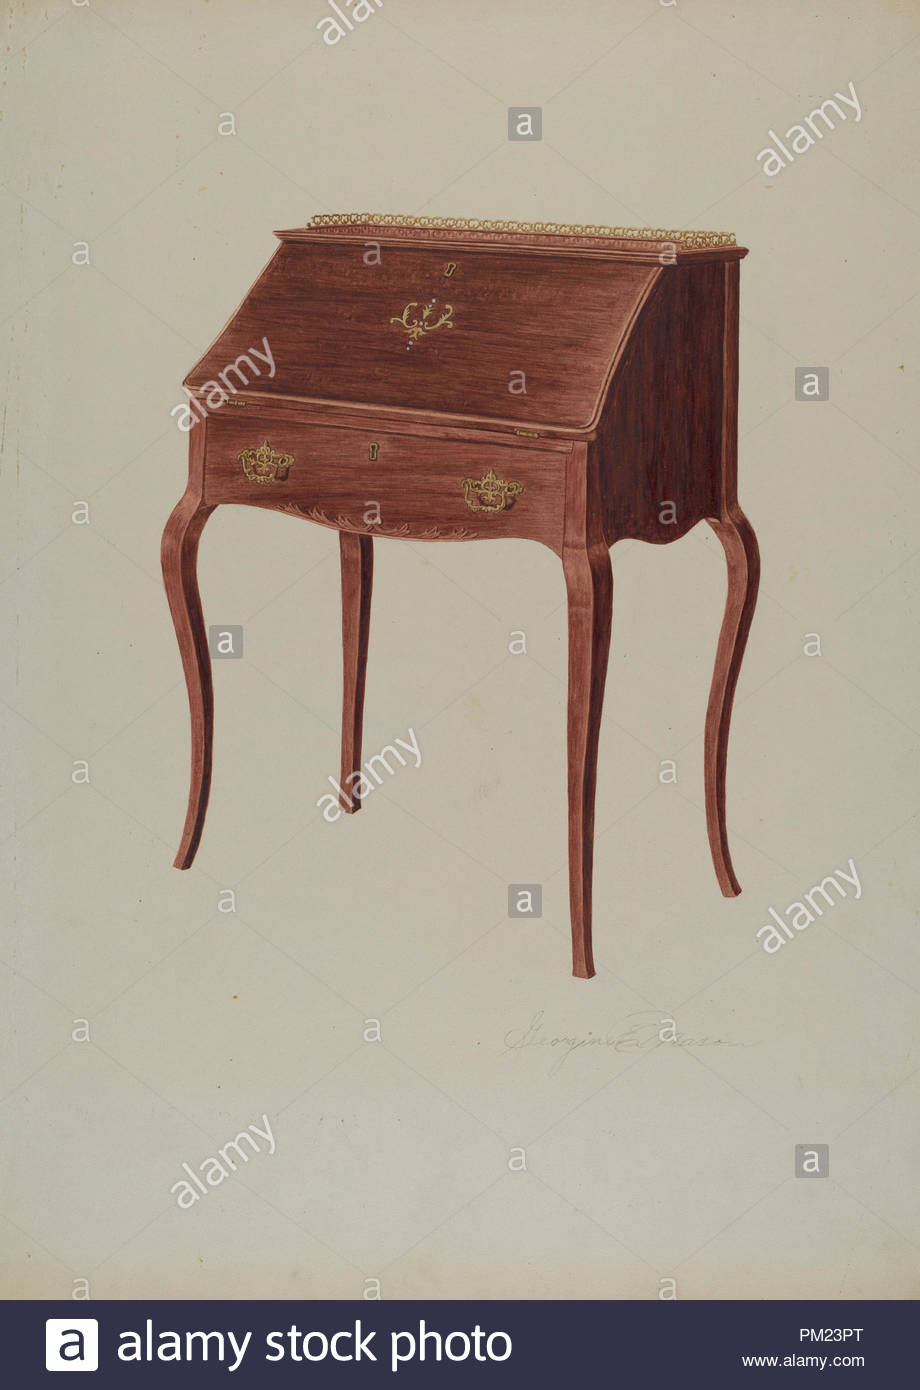 Pencil Stool Skinny Like Stools And Diverticulitis